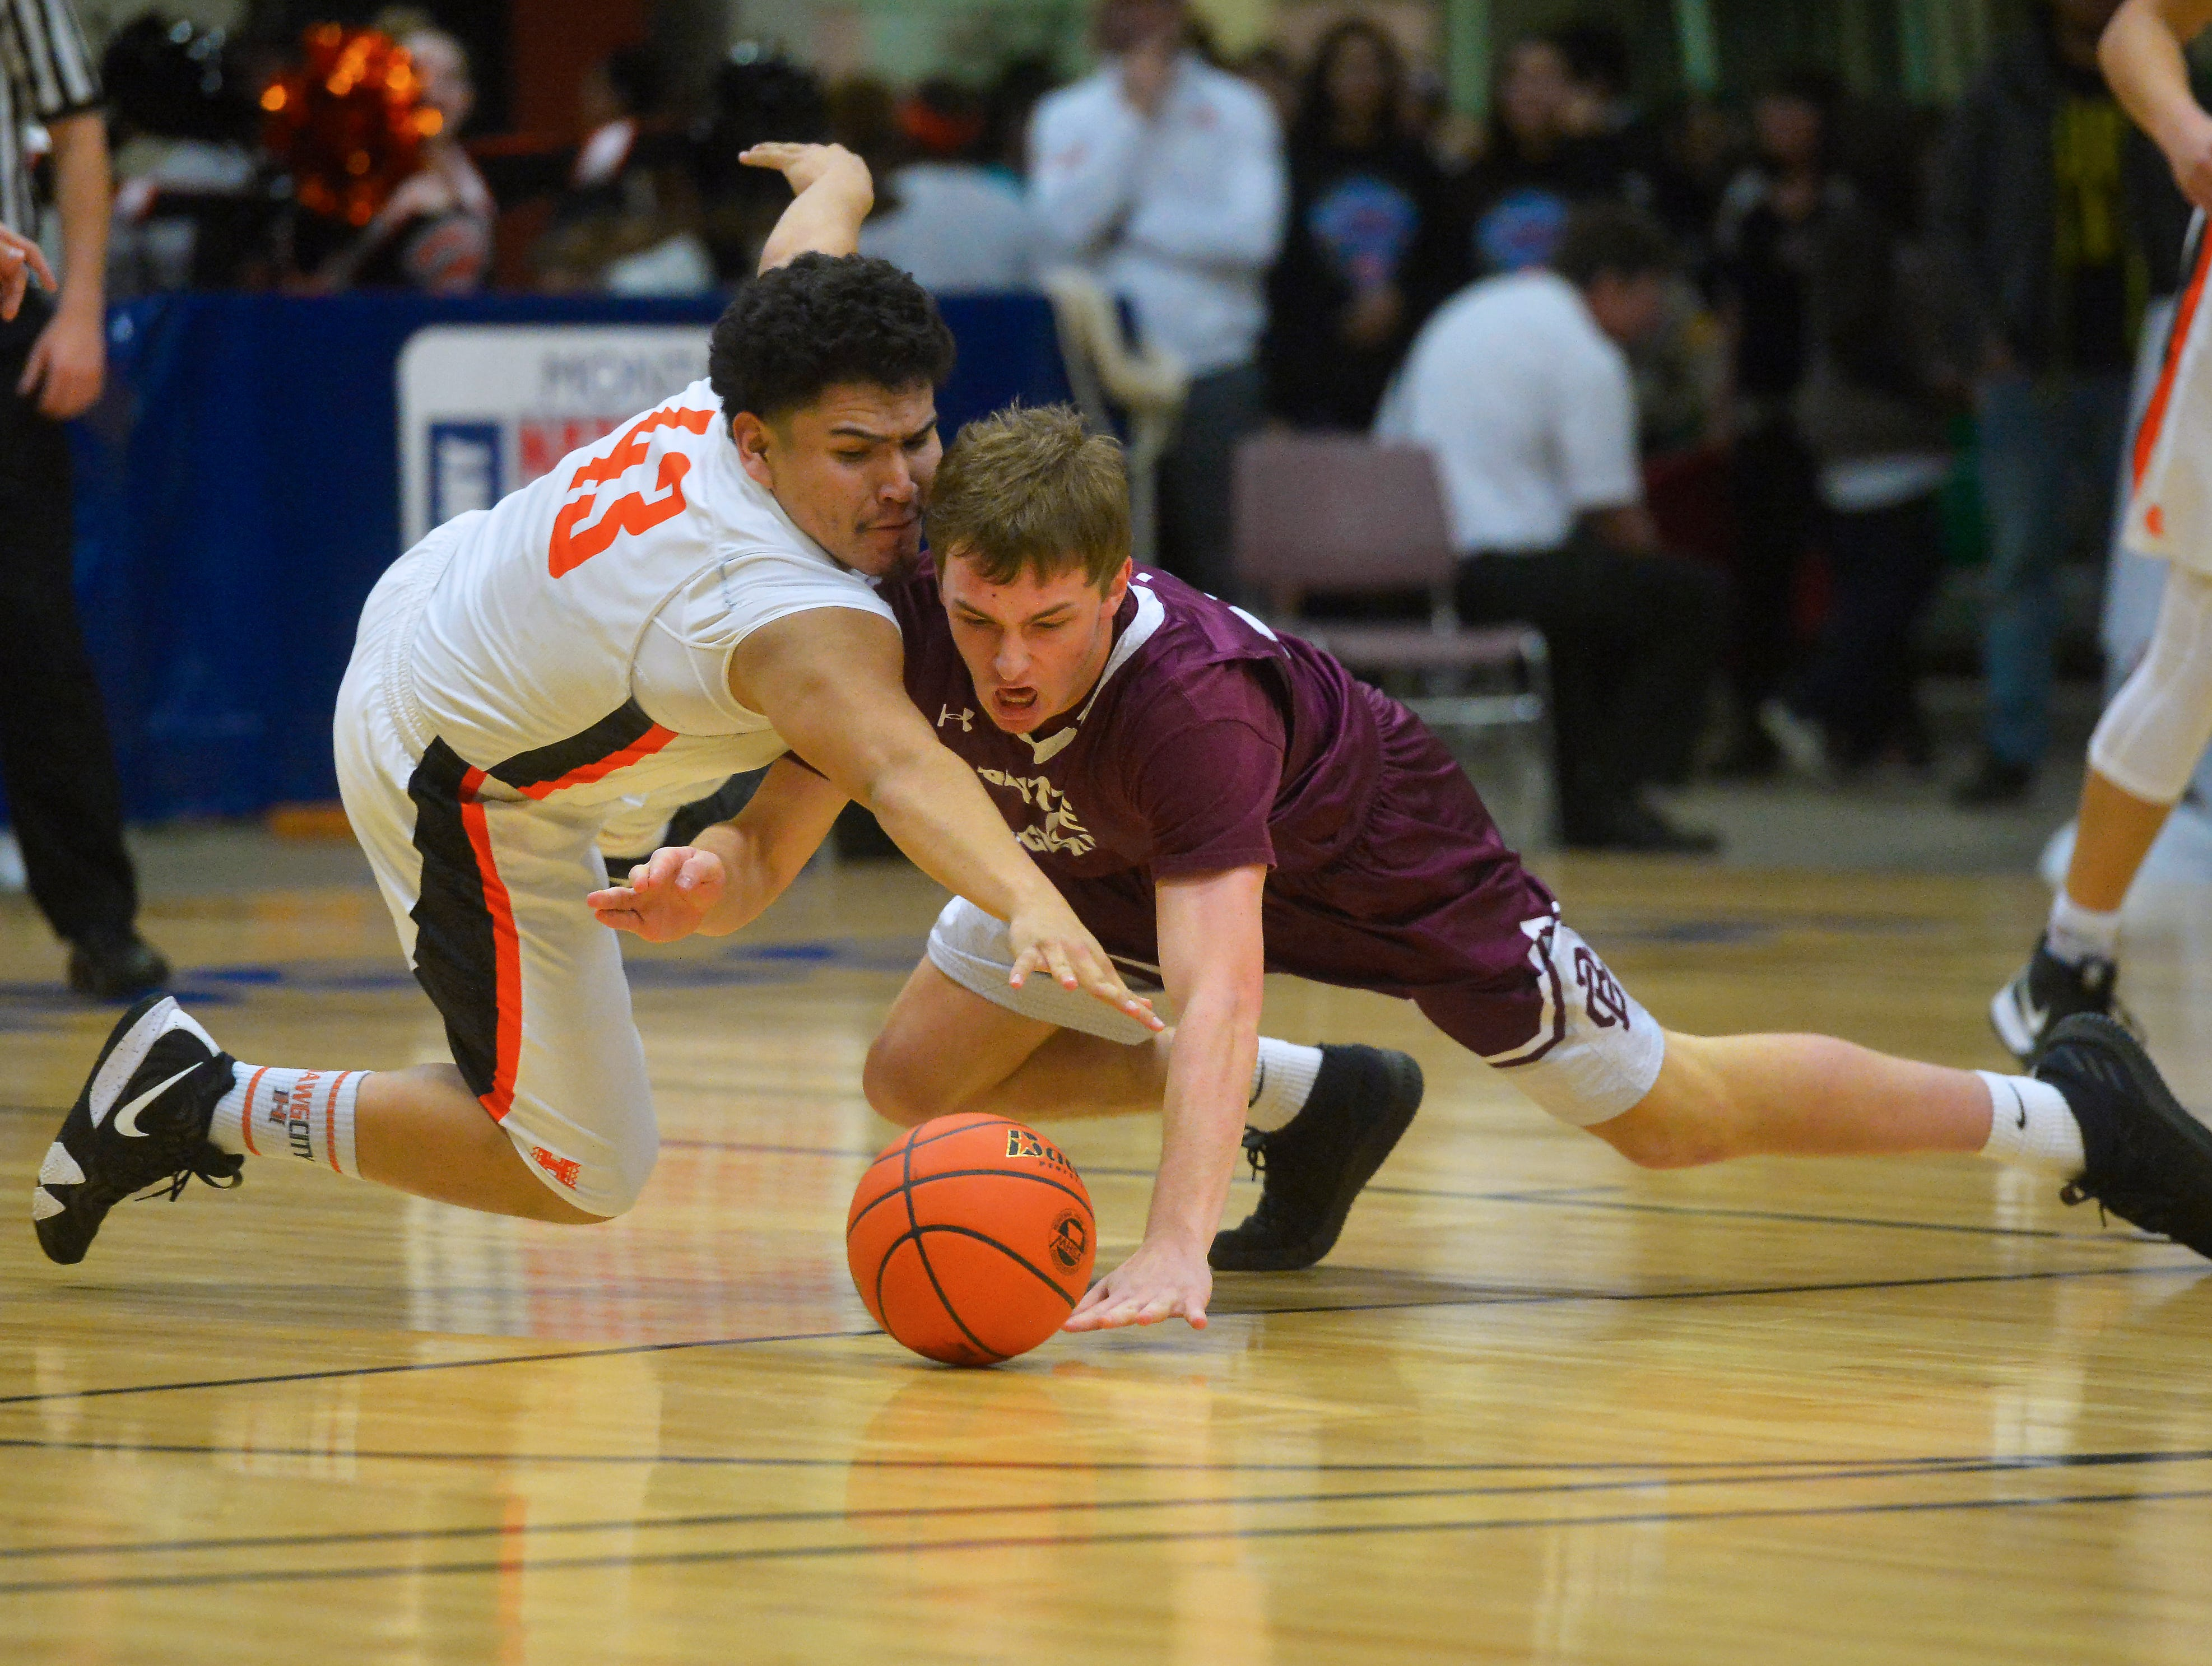 Hardin's Andrew House and Butte Central's Matt Simkins dive for a loose ball during the semifinal game of the State Class A Basketball Tournament in the Four Seasons Arena, Friday.